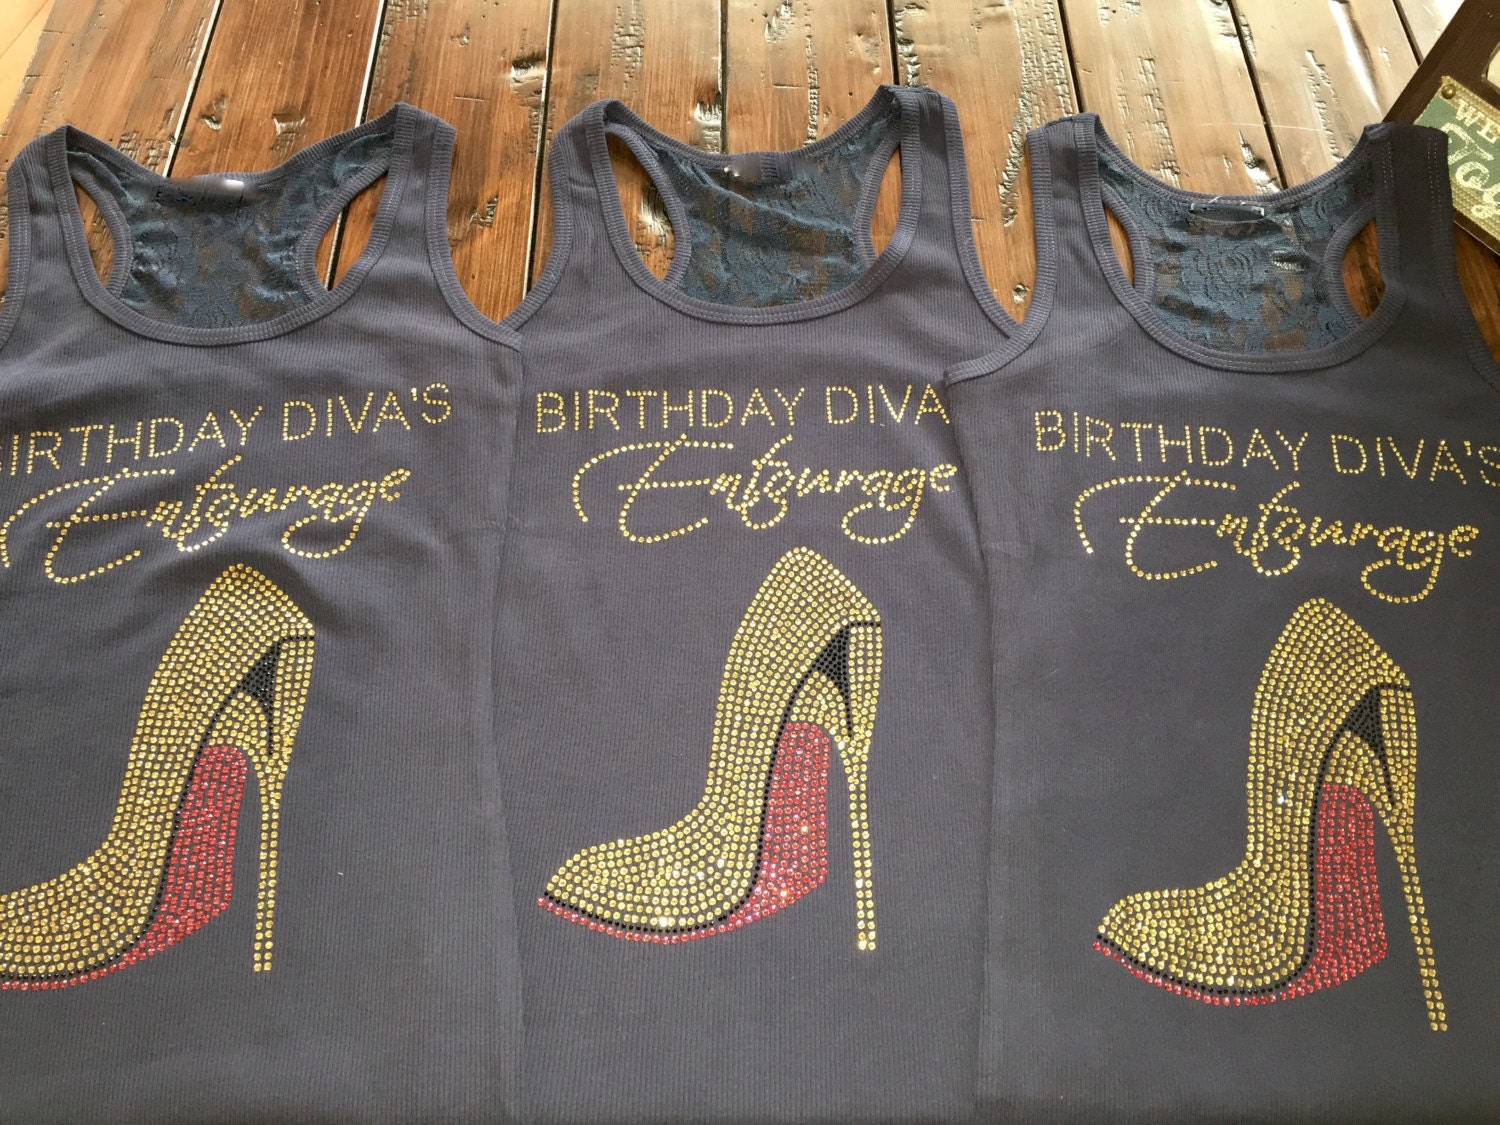 5 Gold Rhinestone Birthday Divas Entourage Shirts Ladies Bling Shirt Adult Plus Sizes